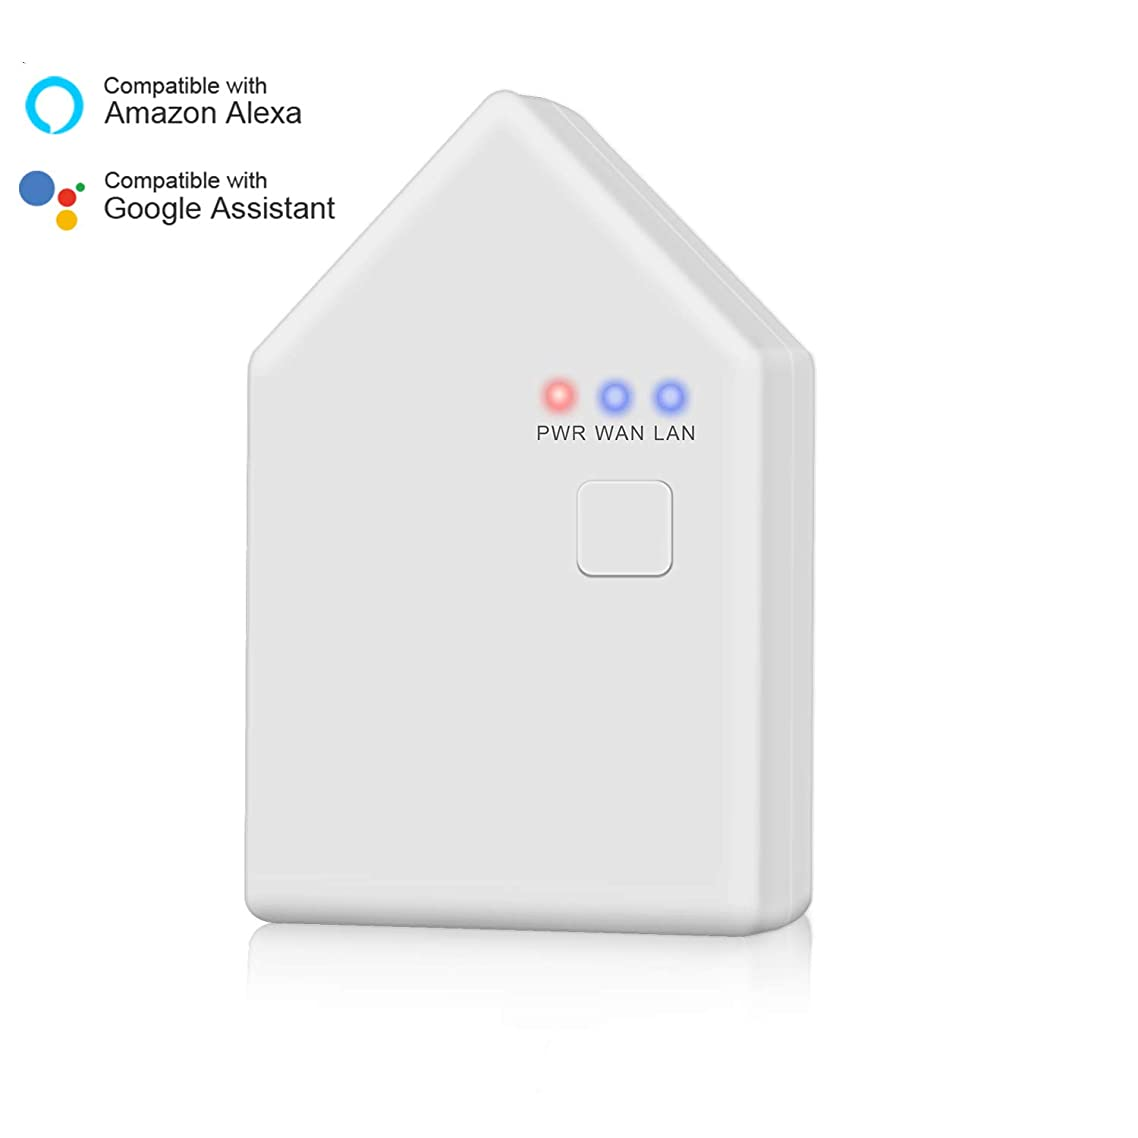 Magic Hue Smart Home Hub, Stand Alone Bridge, Works with All Magic Hue Bluetooth_Mesh Devices, Compatible with Amazon Alexa and Google Home